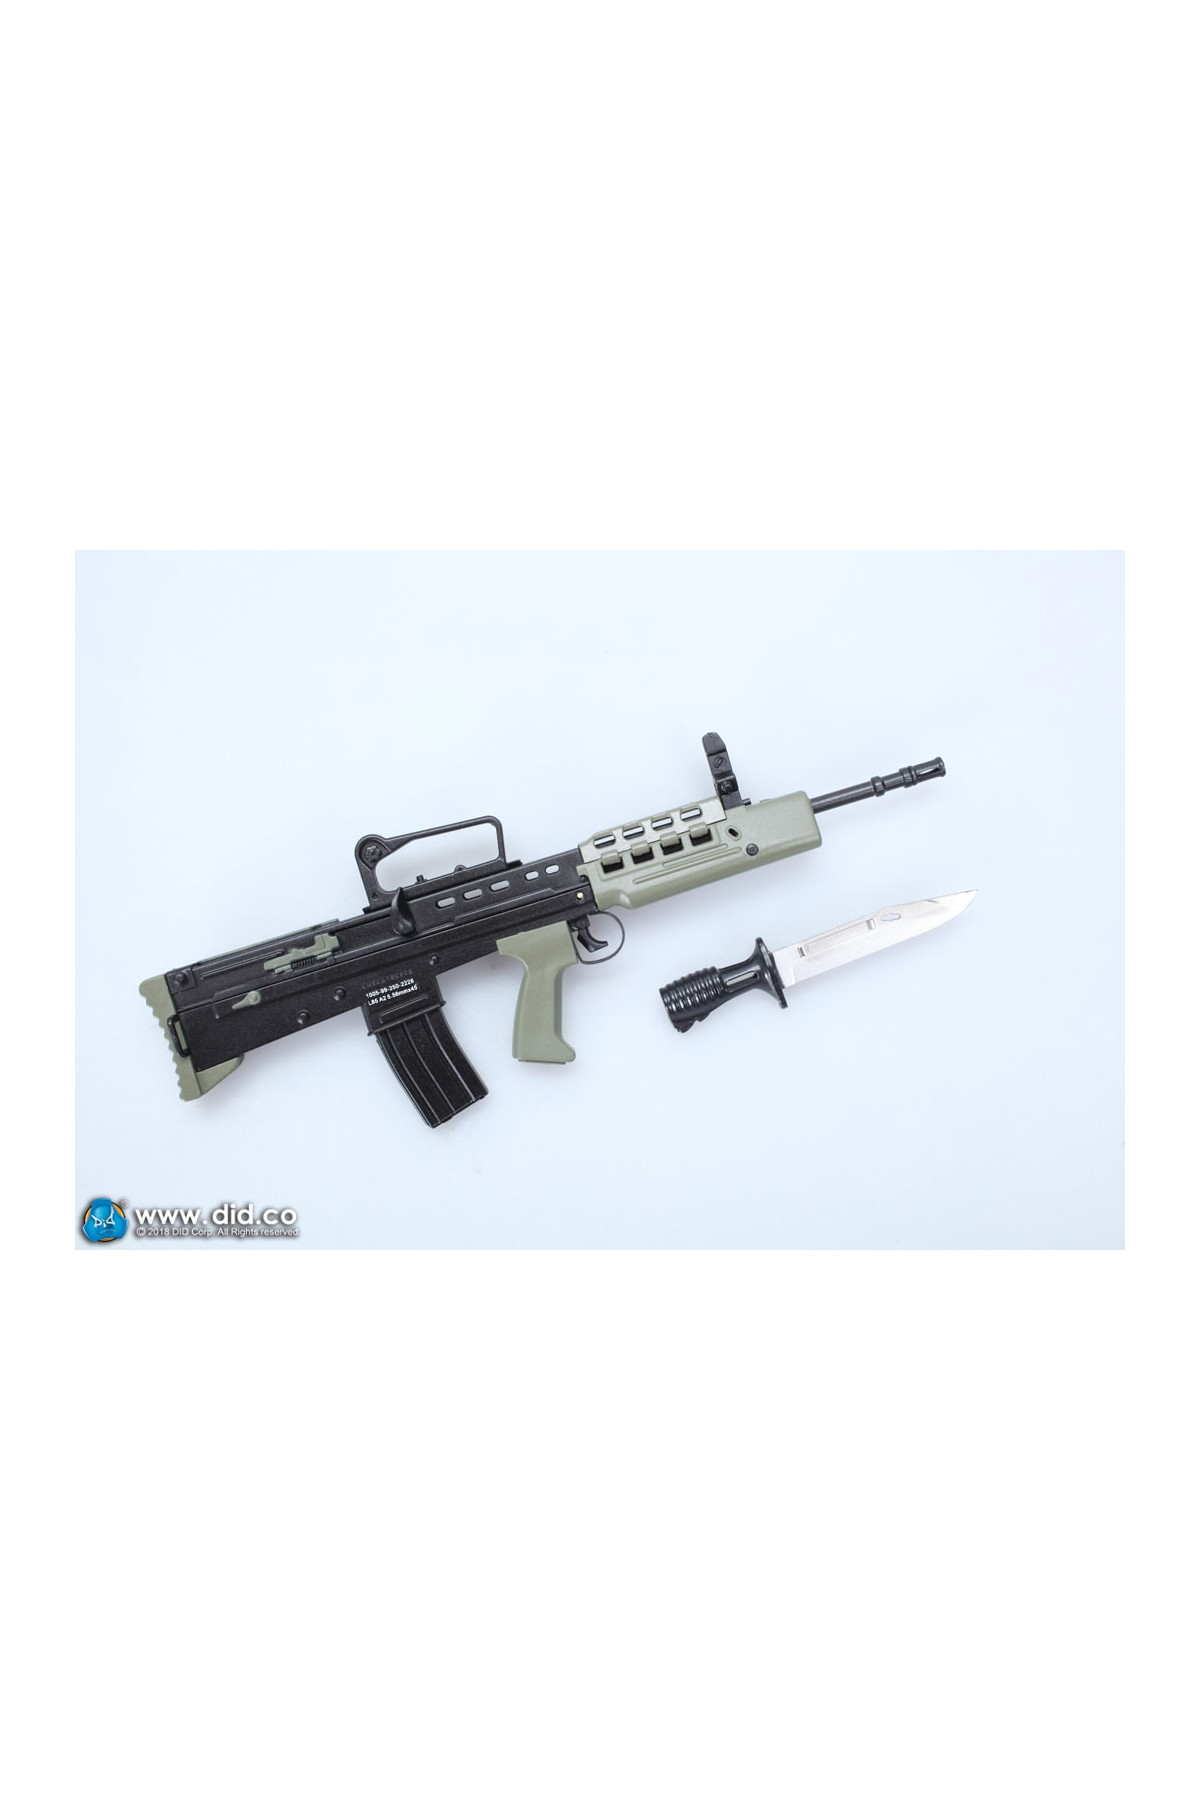 DRAGON IN DREAMS DID 1//6 SCALE MODERN BRITISH SA80 RIFLE FROM THE GUARDS TOY